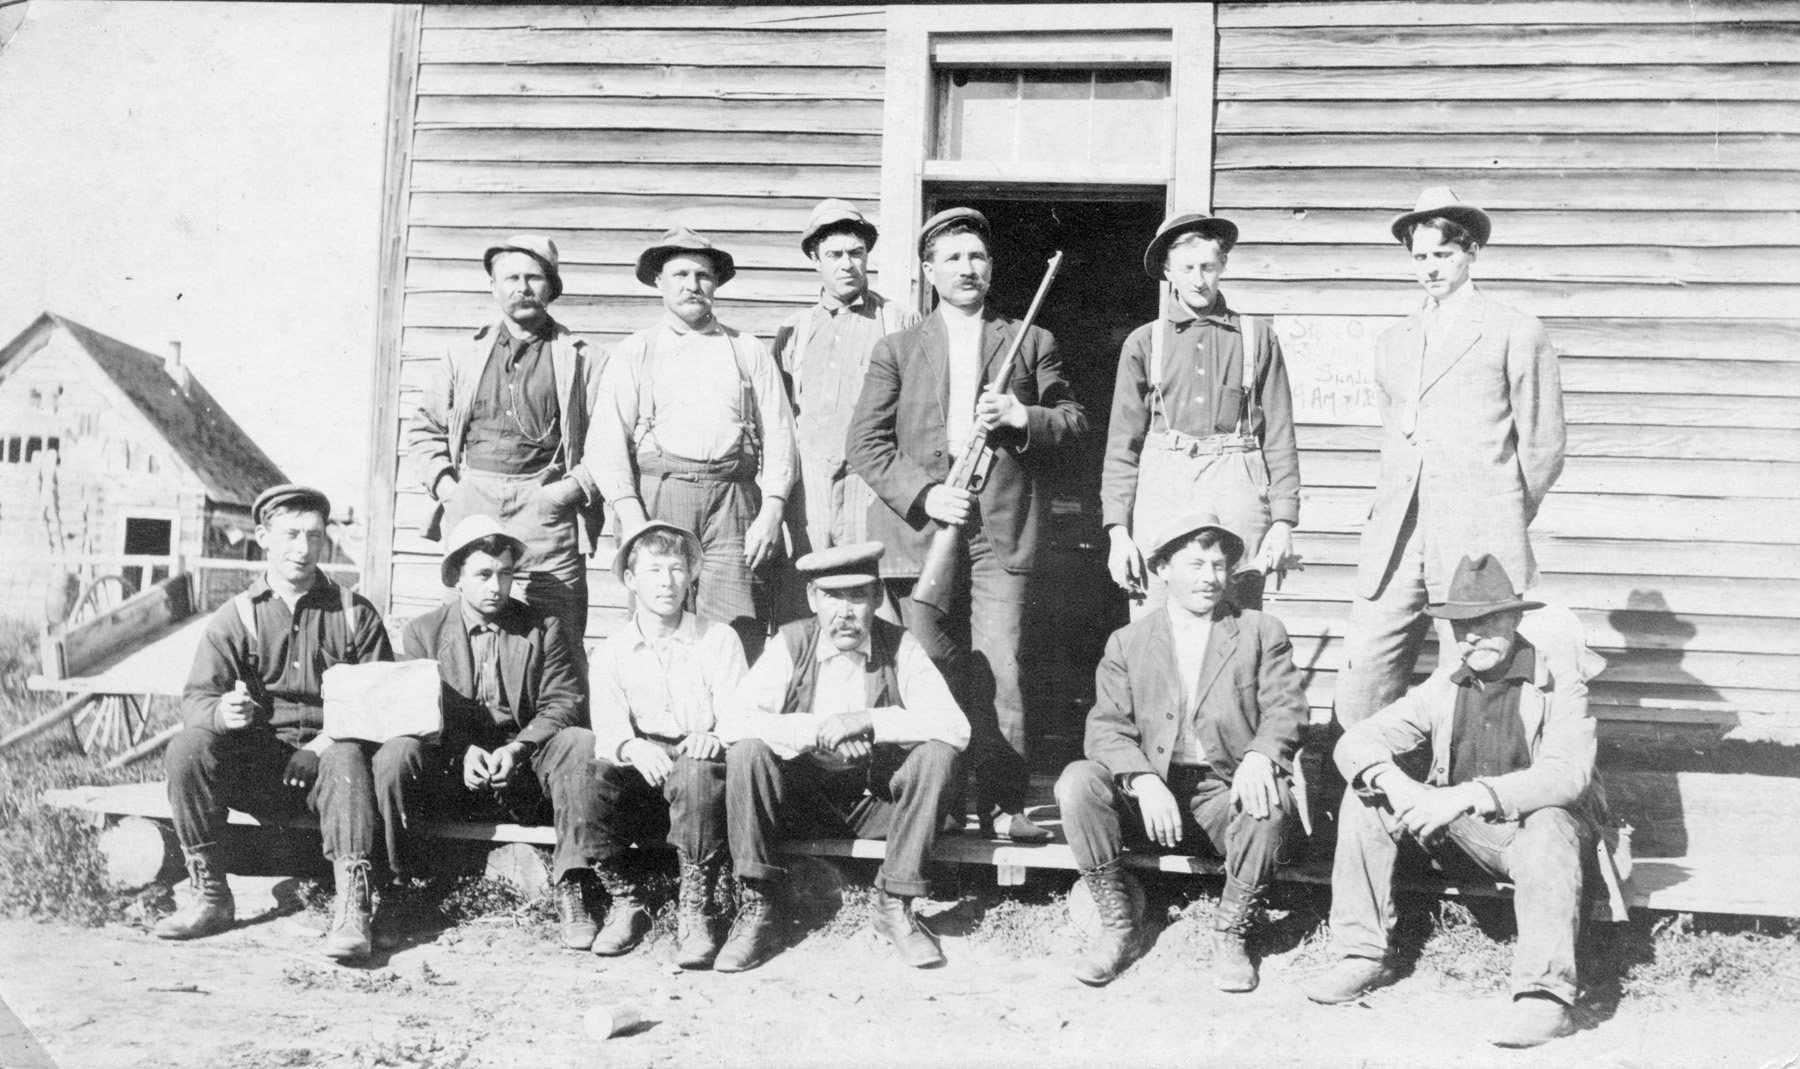 Trappers, Hunters and Cannery workers